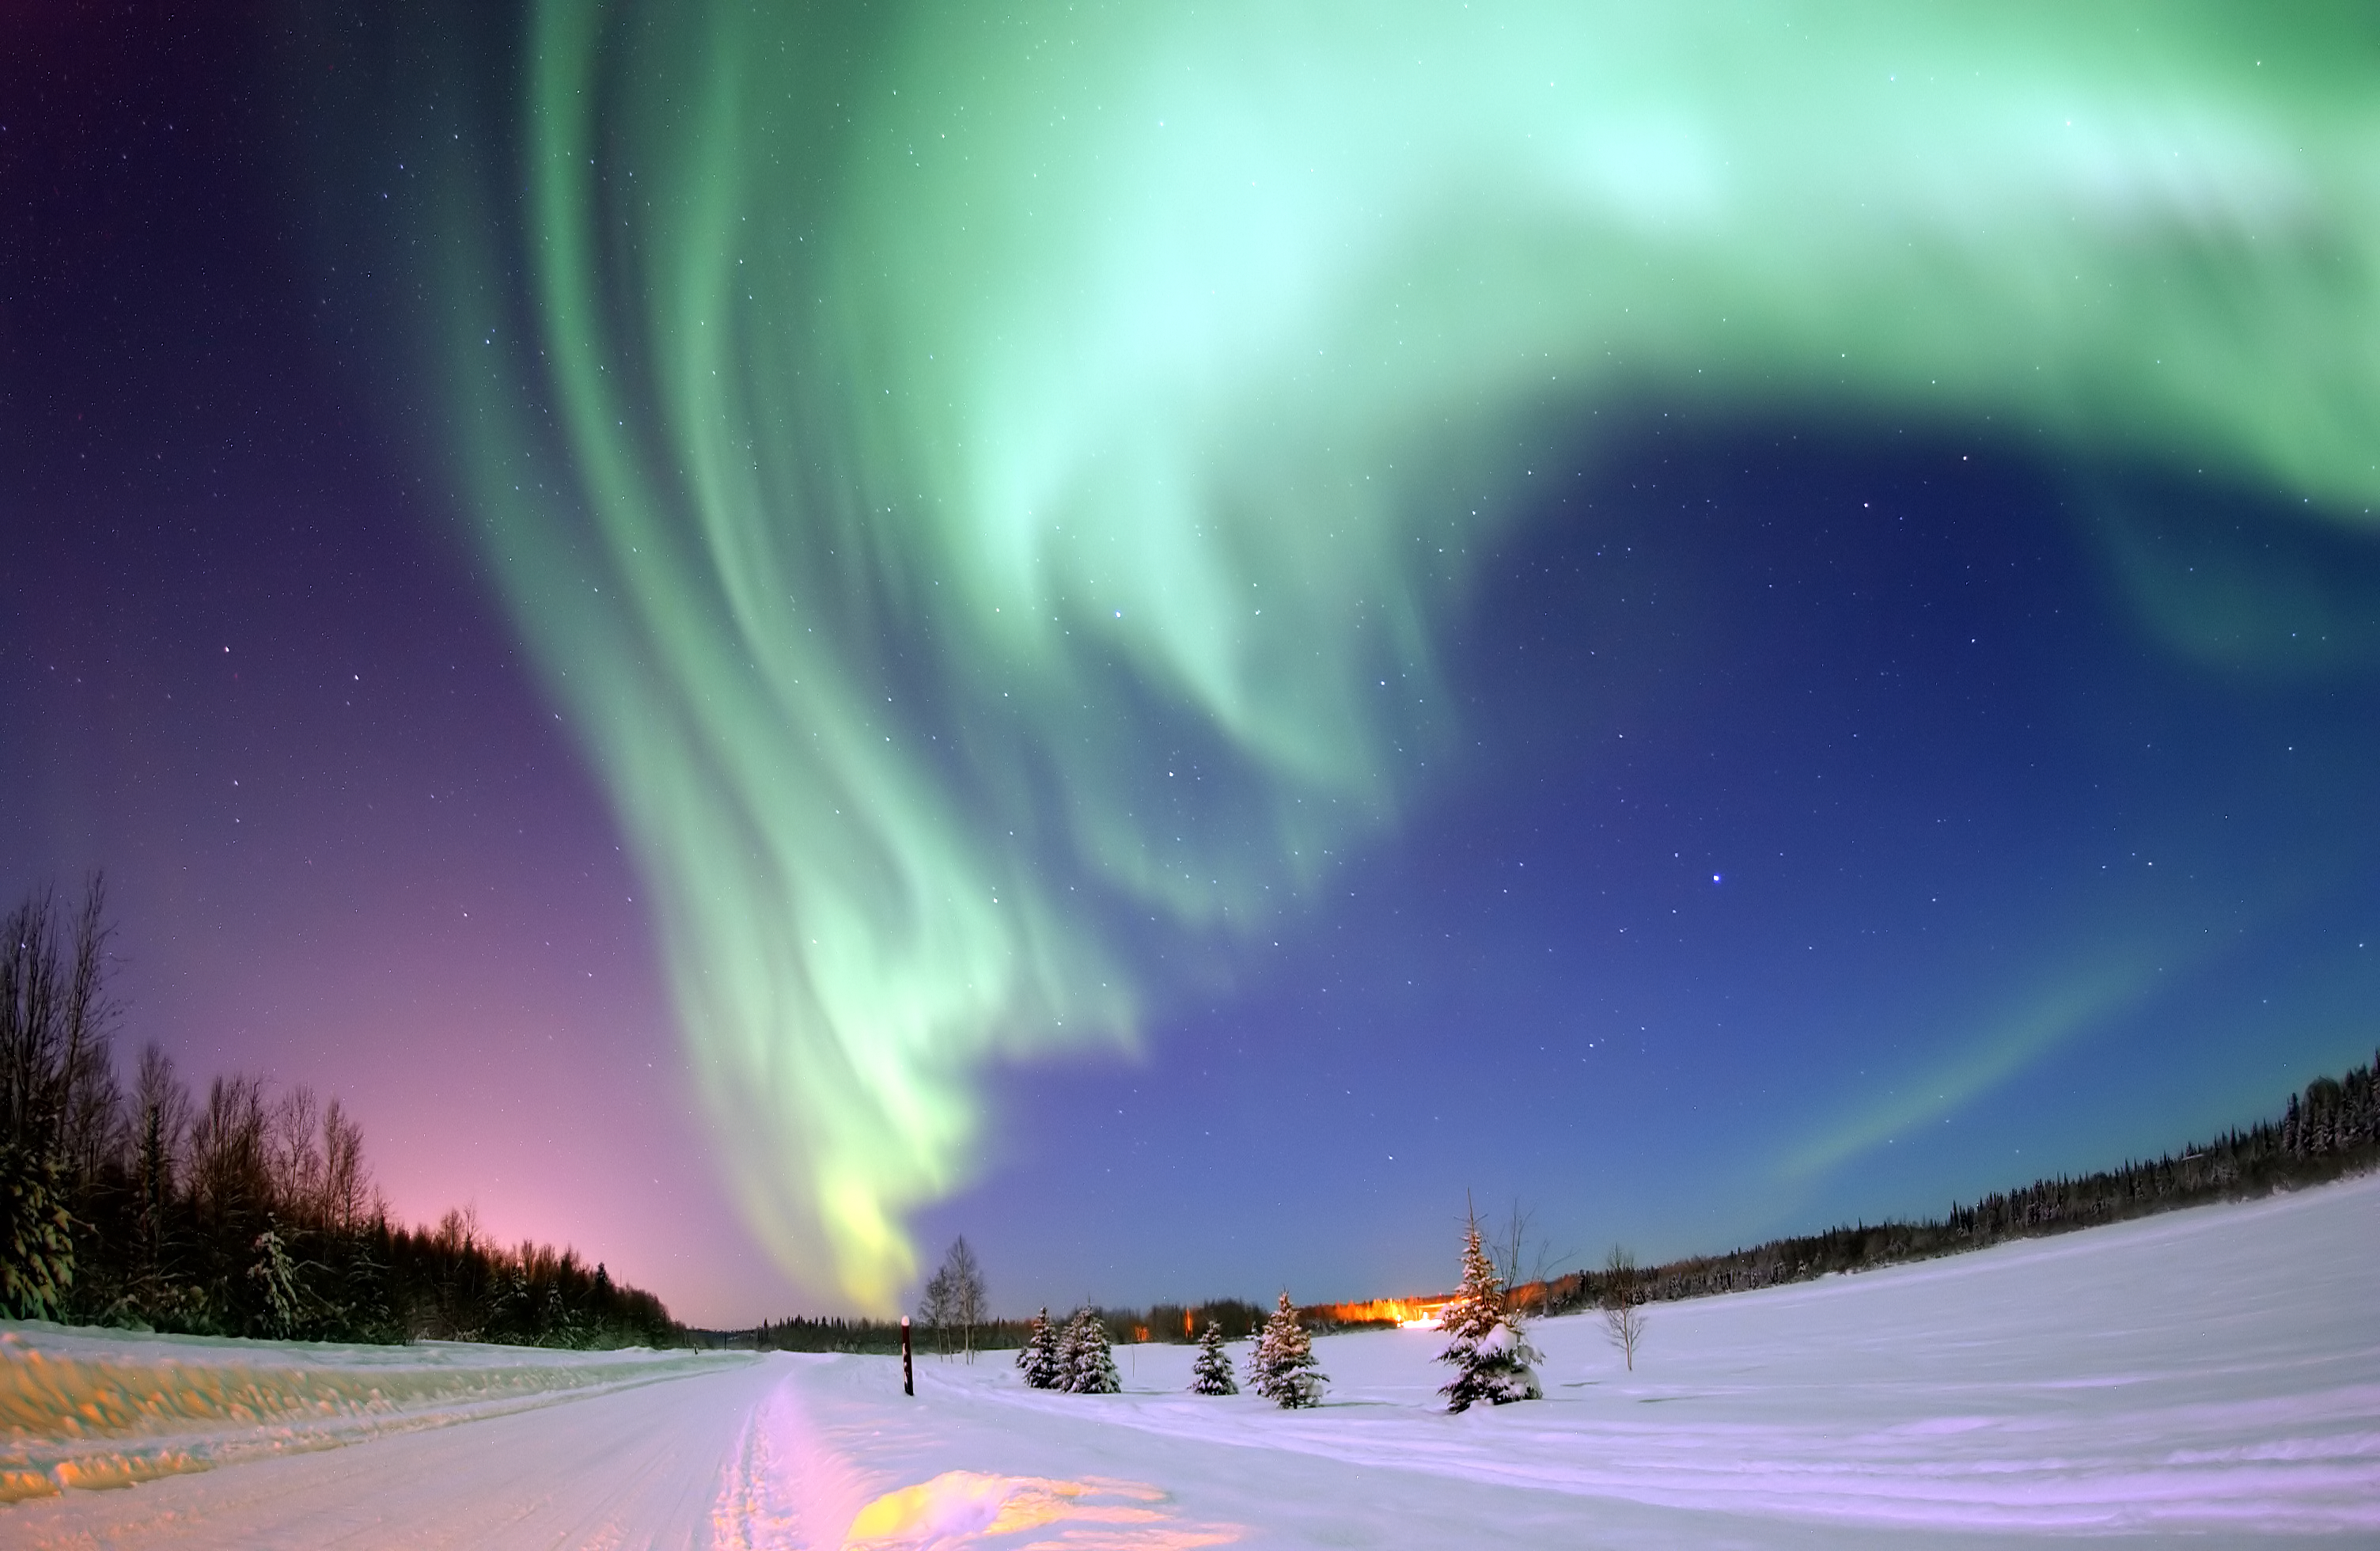 Chasing the Northern Lights – Aurora Borealis